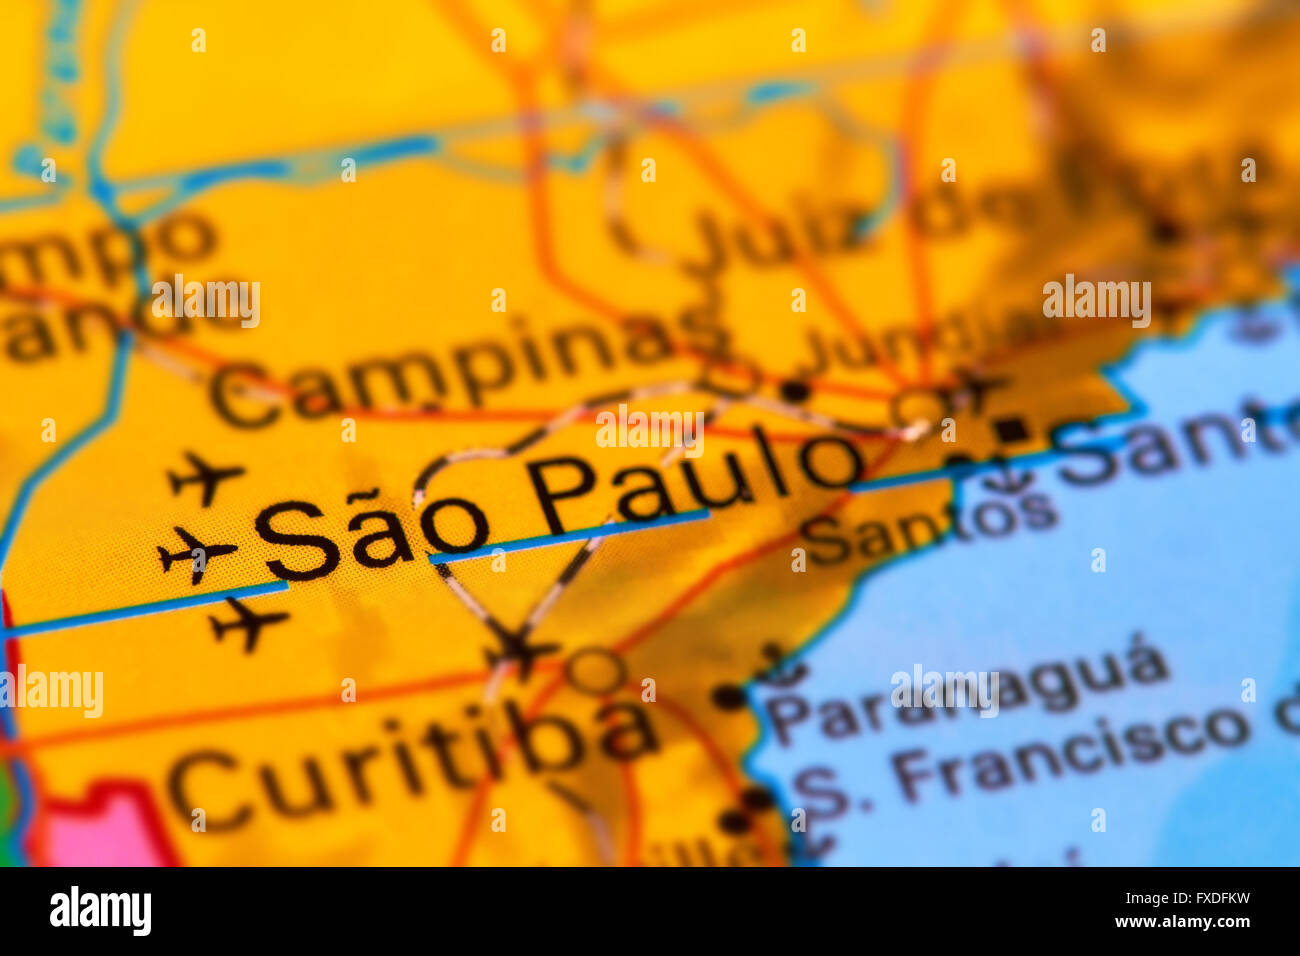 Sao Paulo City In Brazil On The World Map Stock Photo 102330589